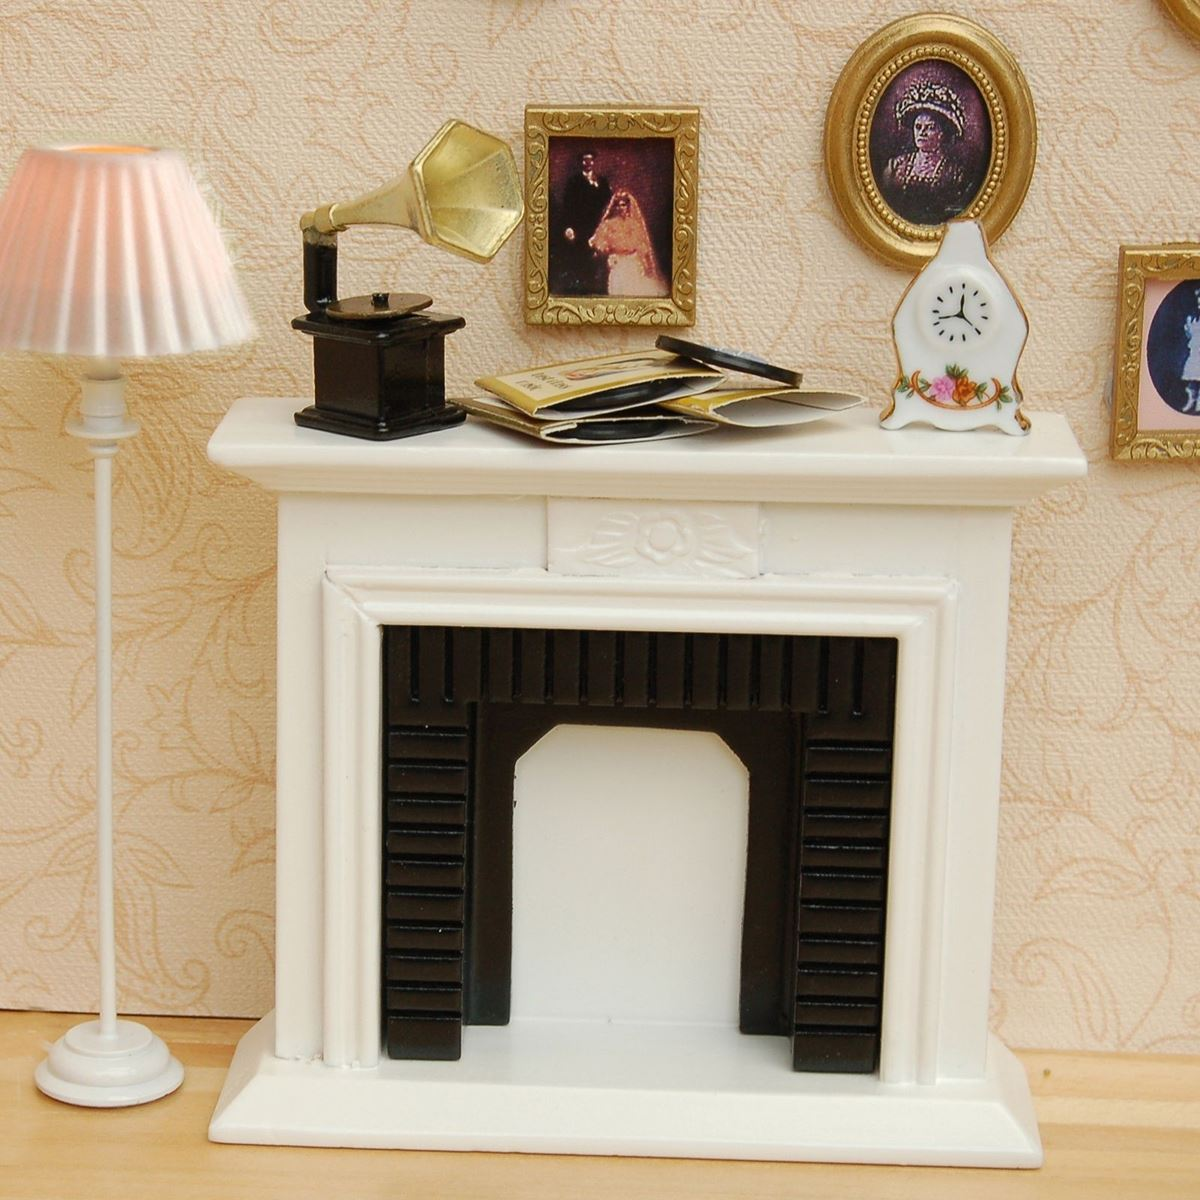 decorative fireplace accessories - Decorative Fireplace